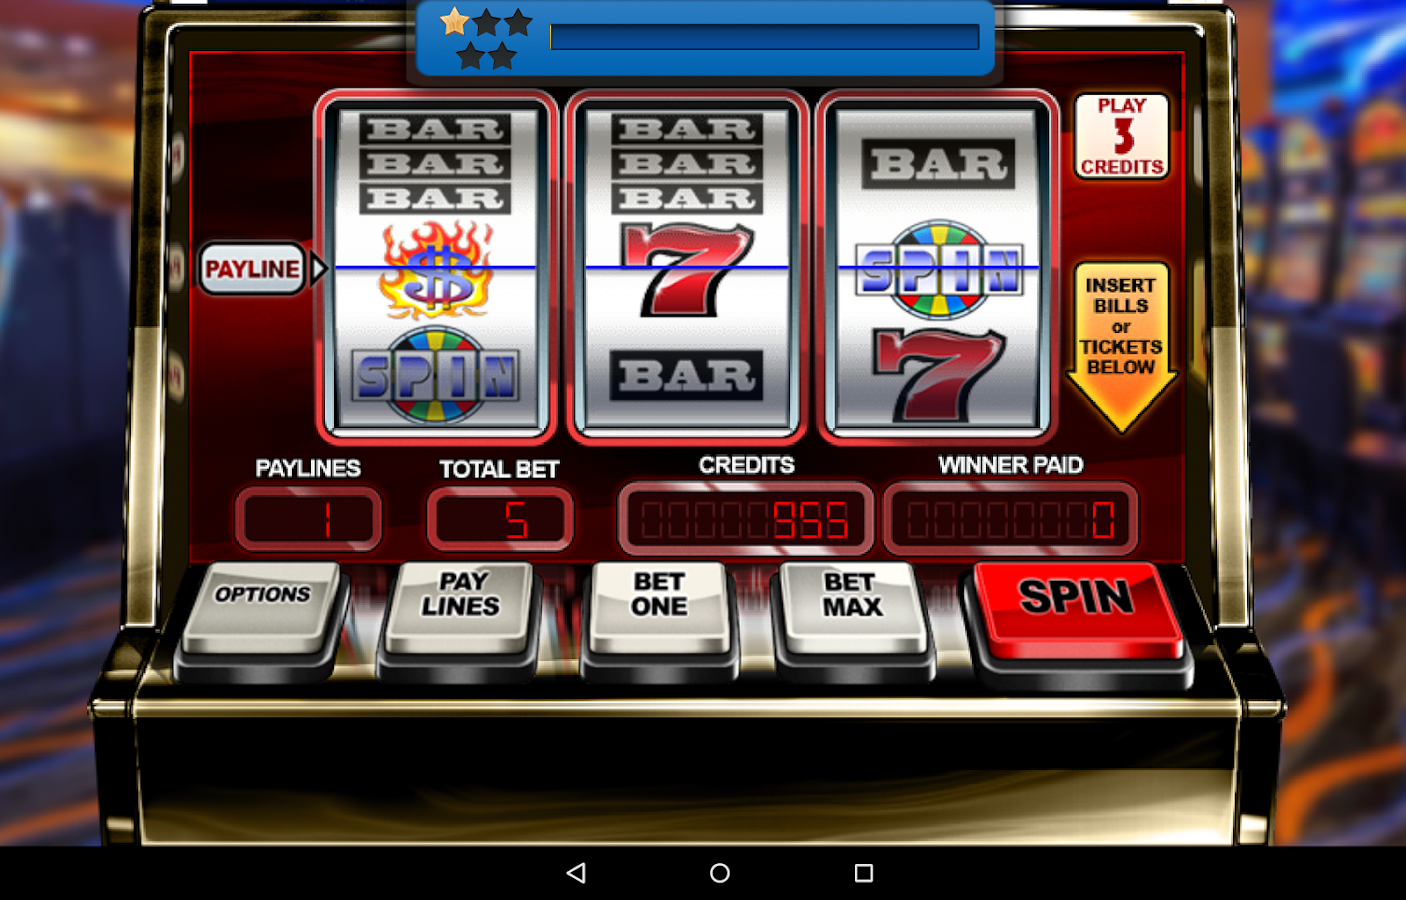 4 Pictures 1 Word Vegas Slot Machine Poker Bot Stealth